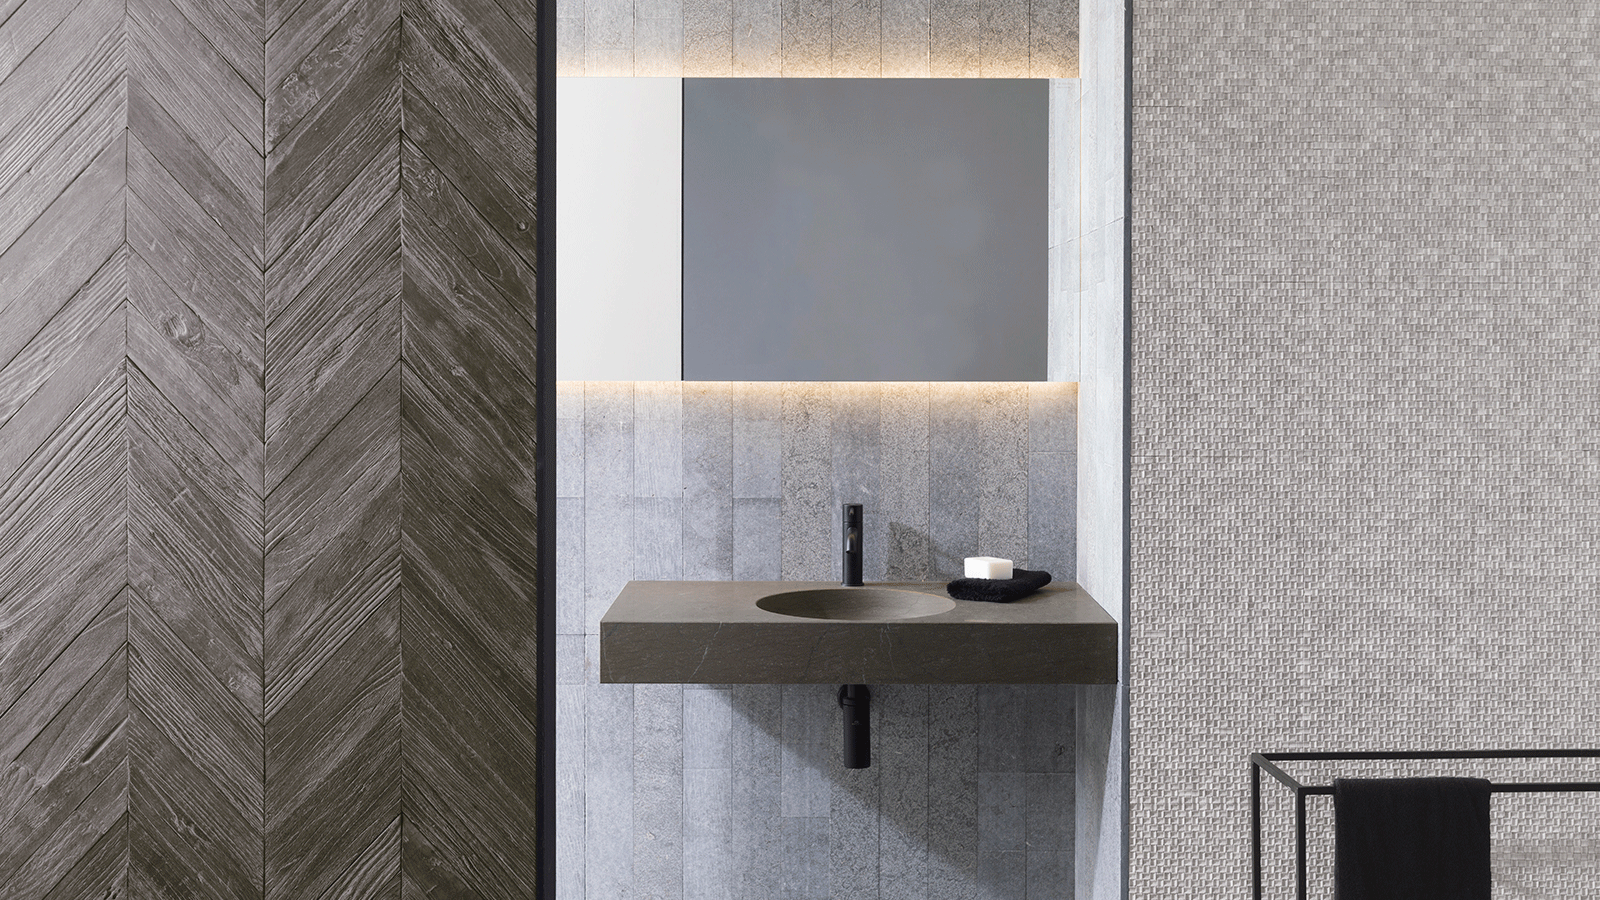 Porcelanosa's new collections promote recycling and sustainability